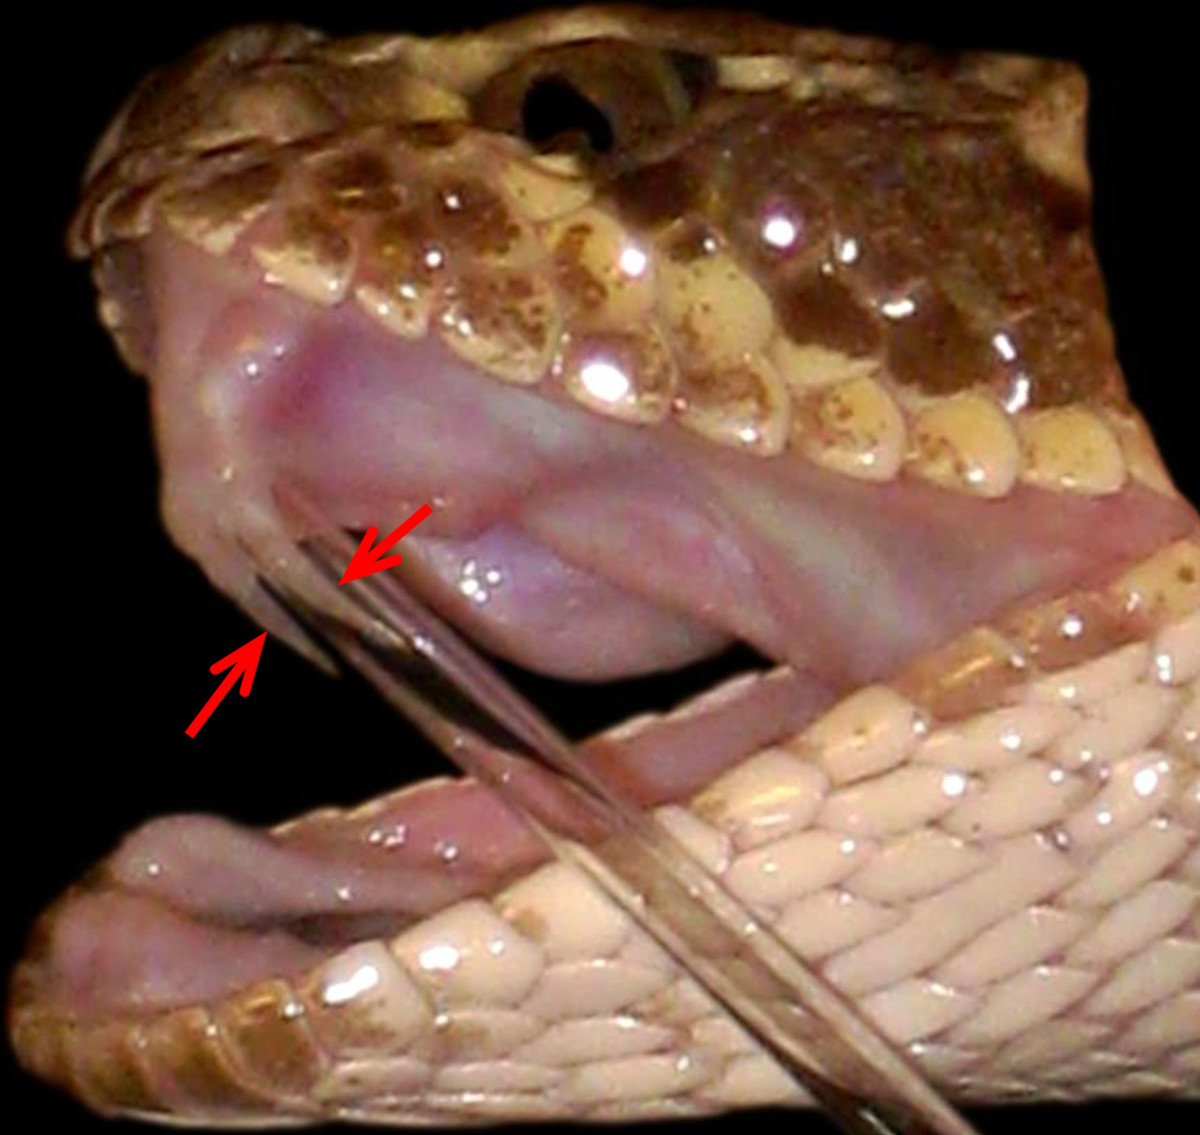 A Prairie Rattlesnake (Crotalus viridis viridis) that possesses two front-fangs on its left side, with the fang on your right being the functional one (the one on the left was just shed, but is still trapped in the fang sheath).